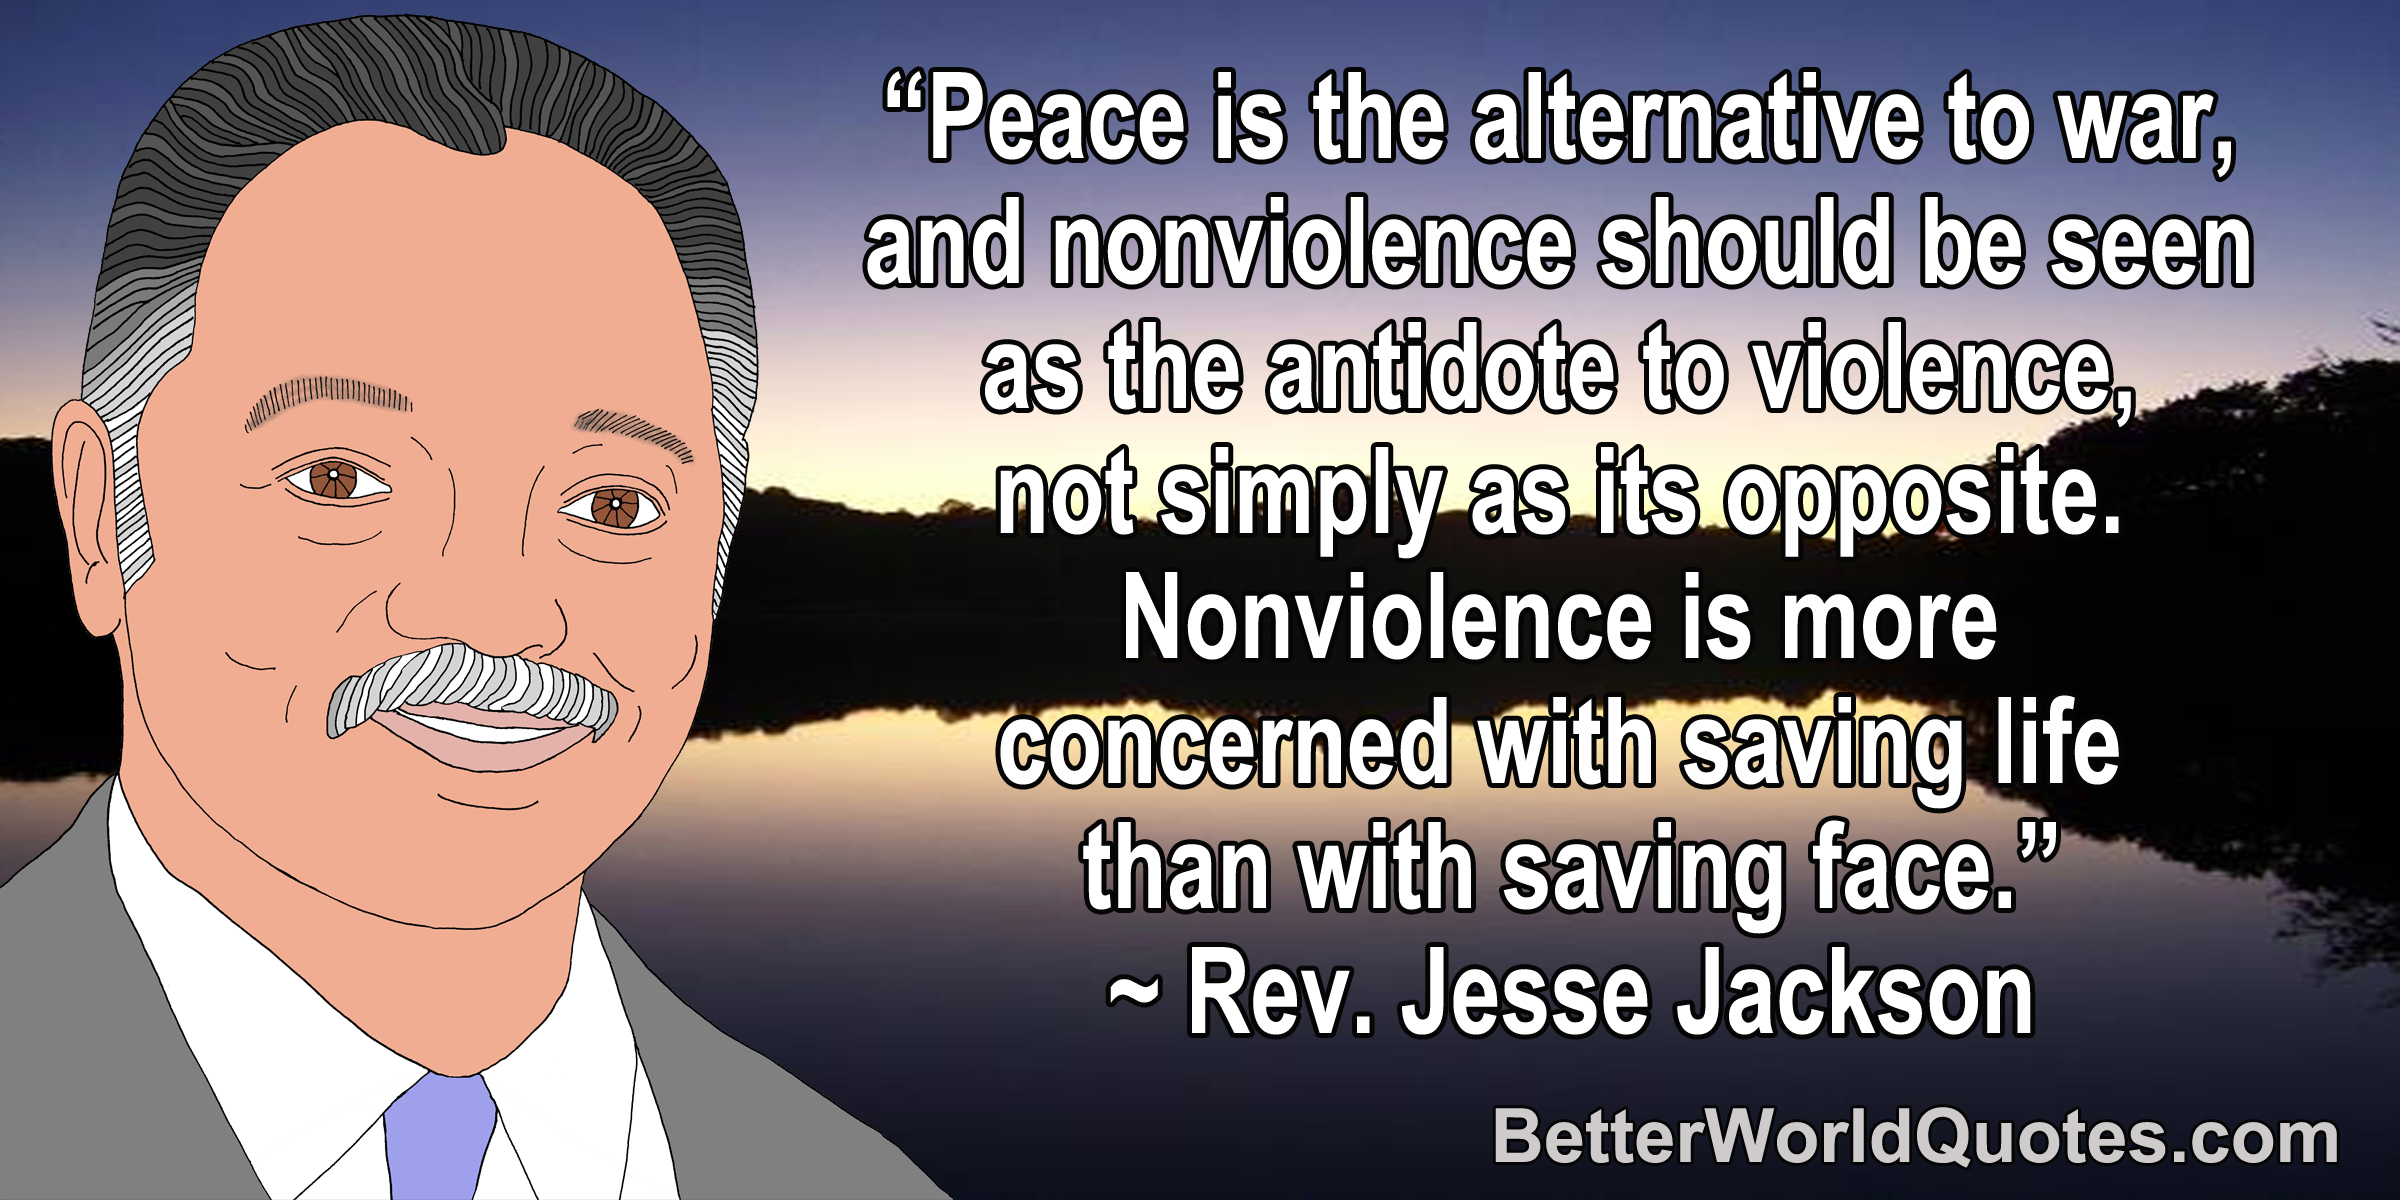 Better World Quotes - Peace